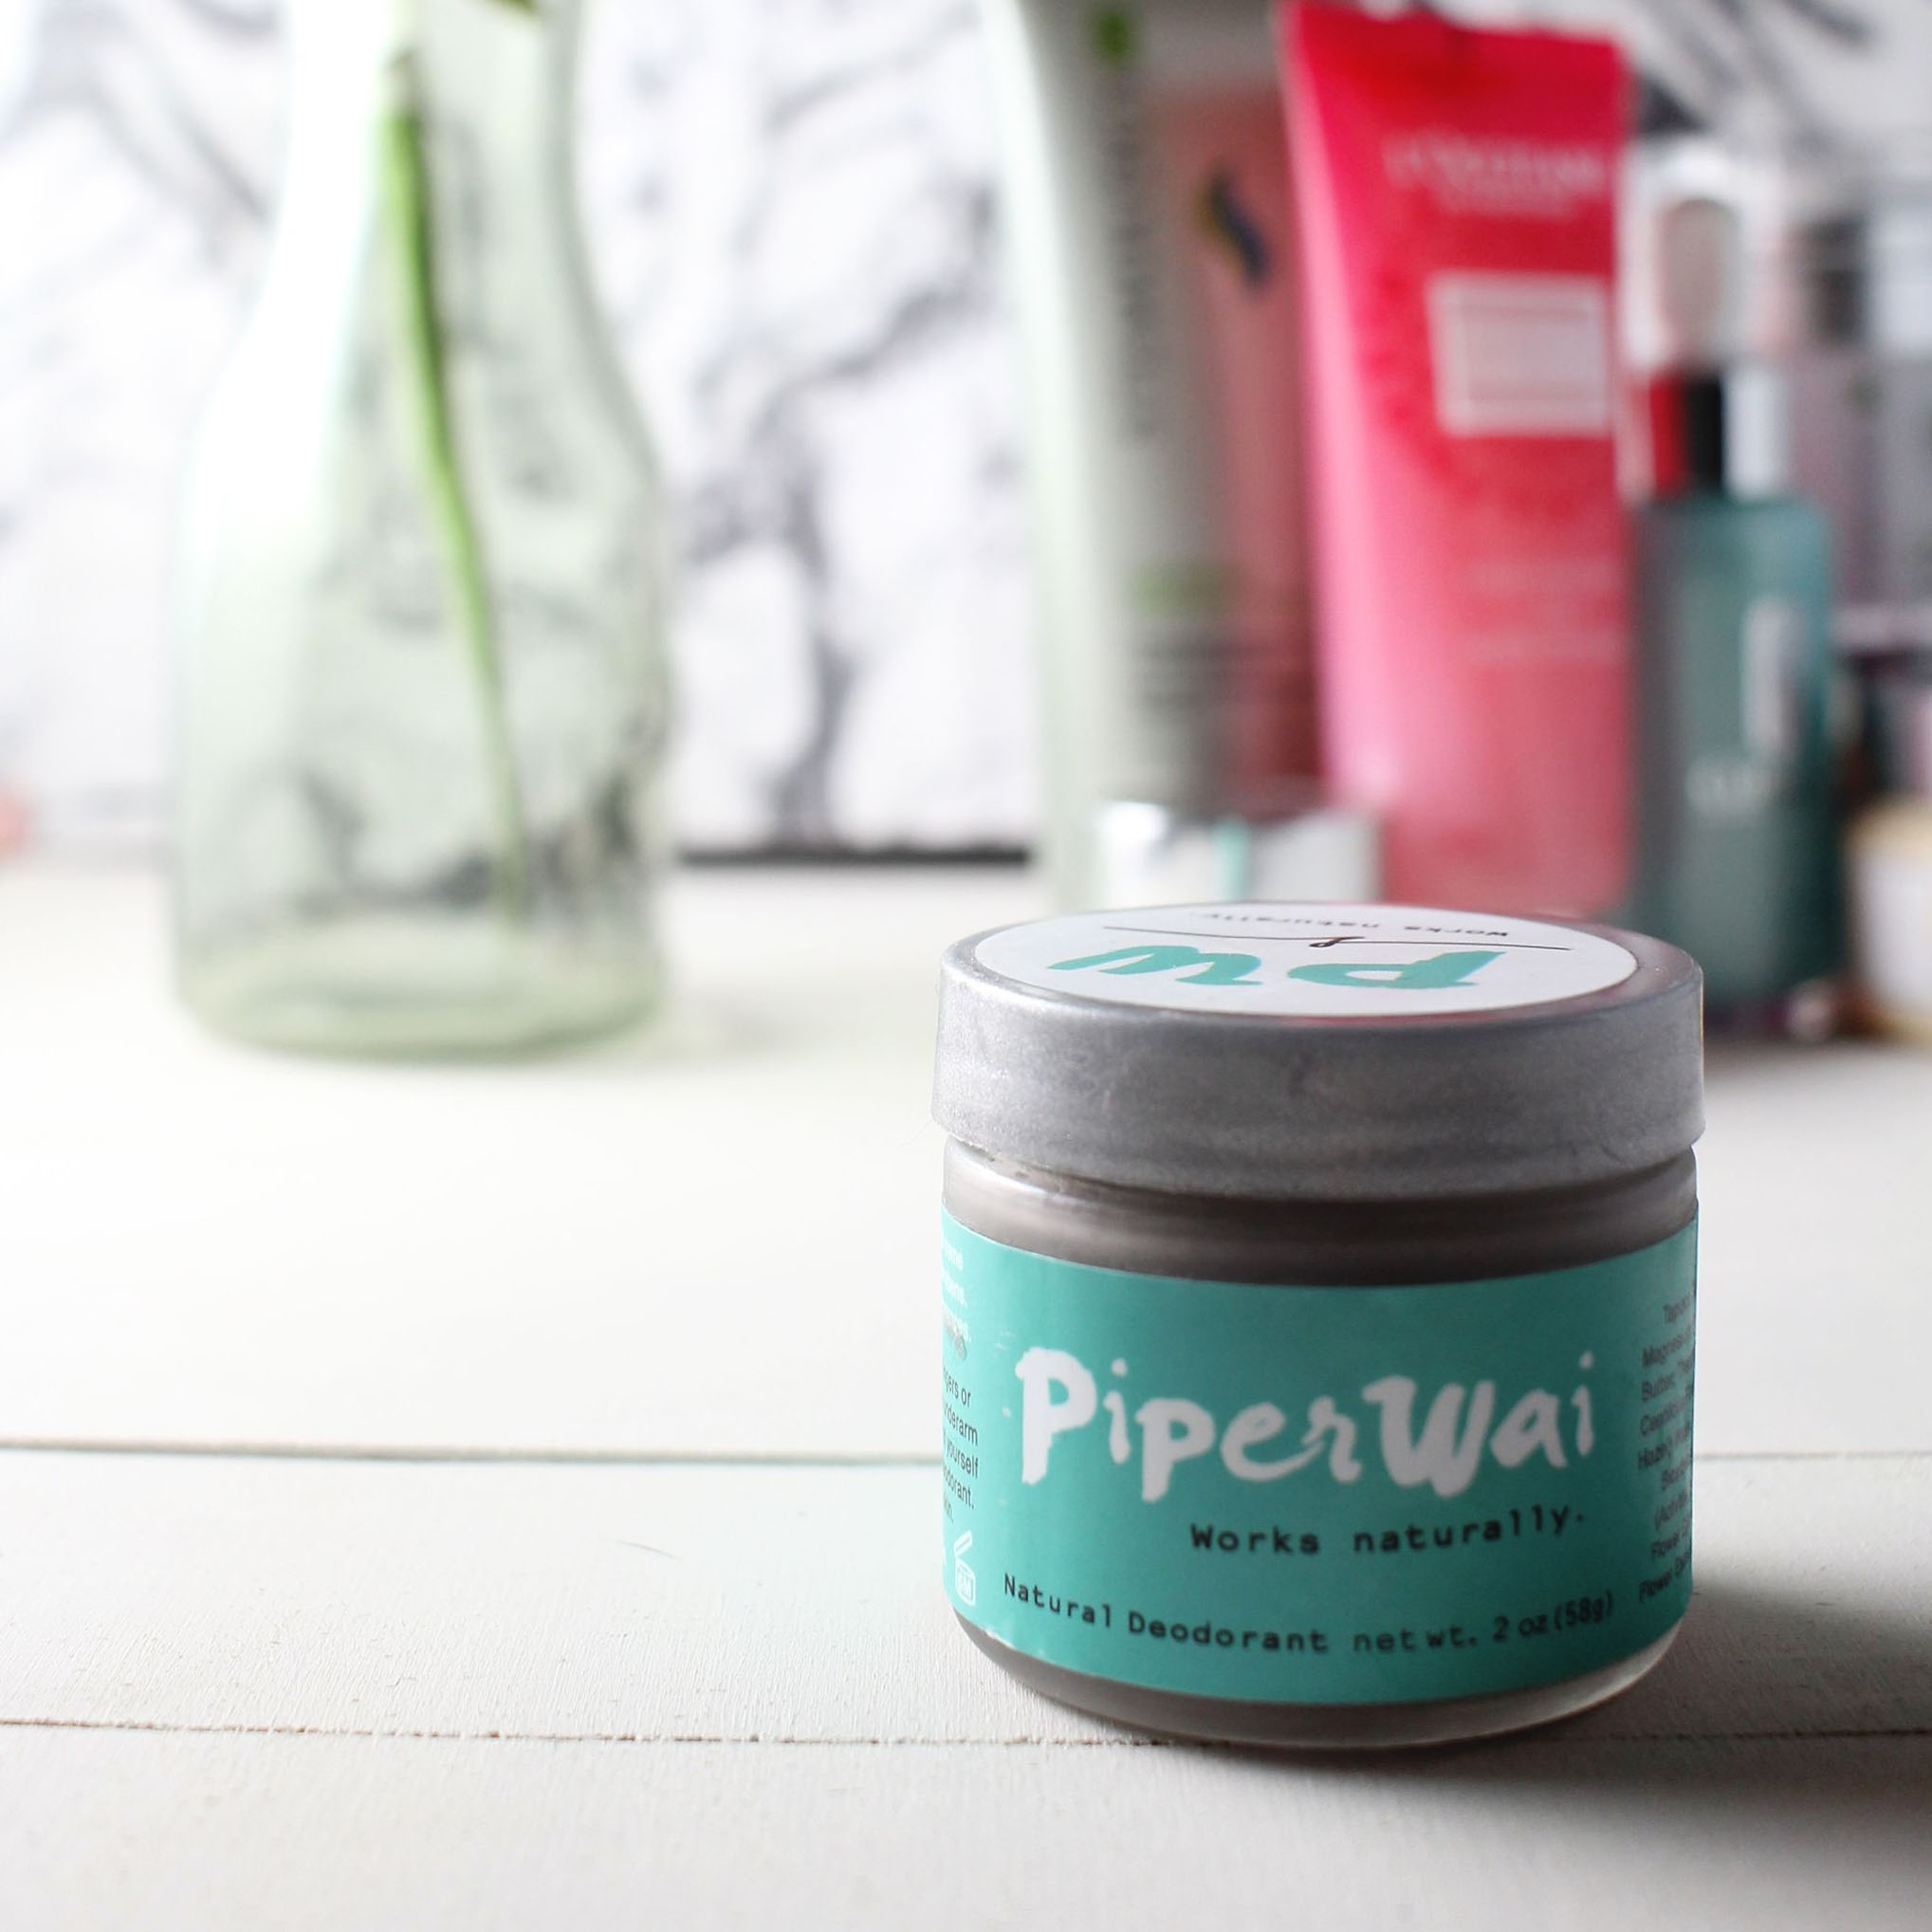 Best Natural Deodorant- PiperWai